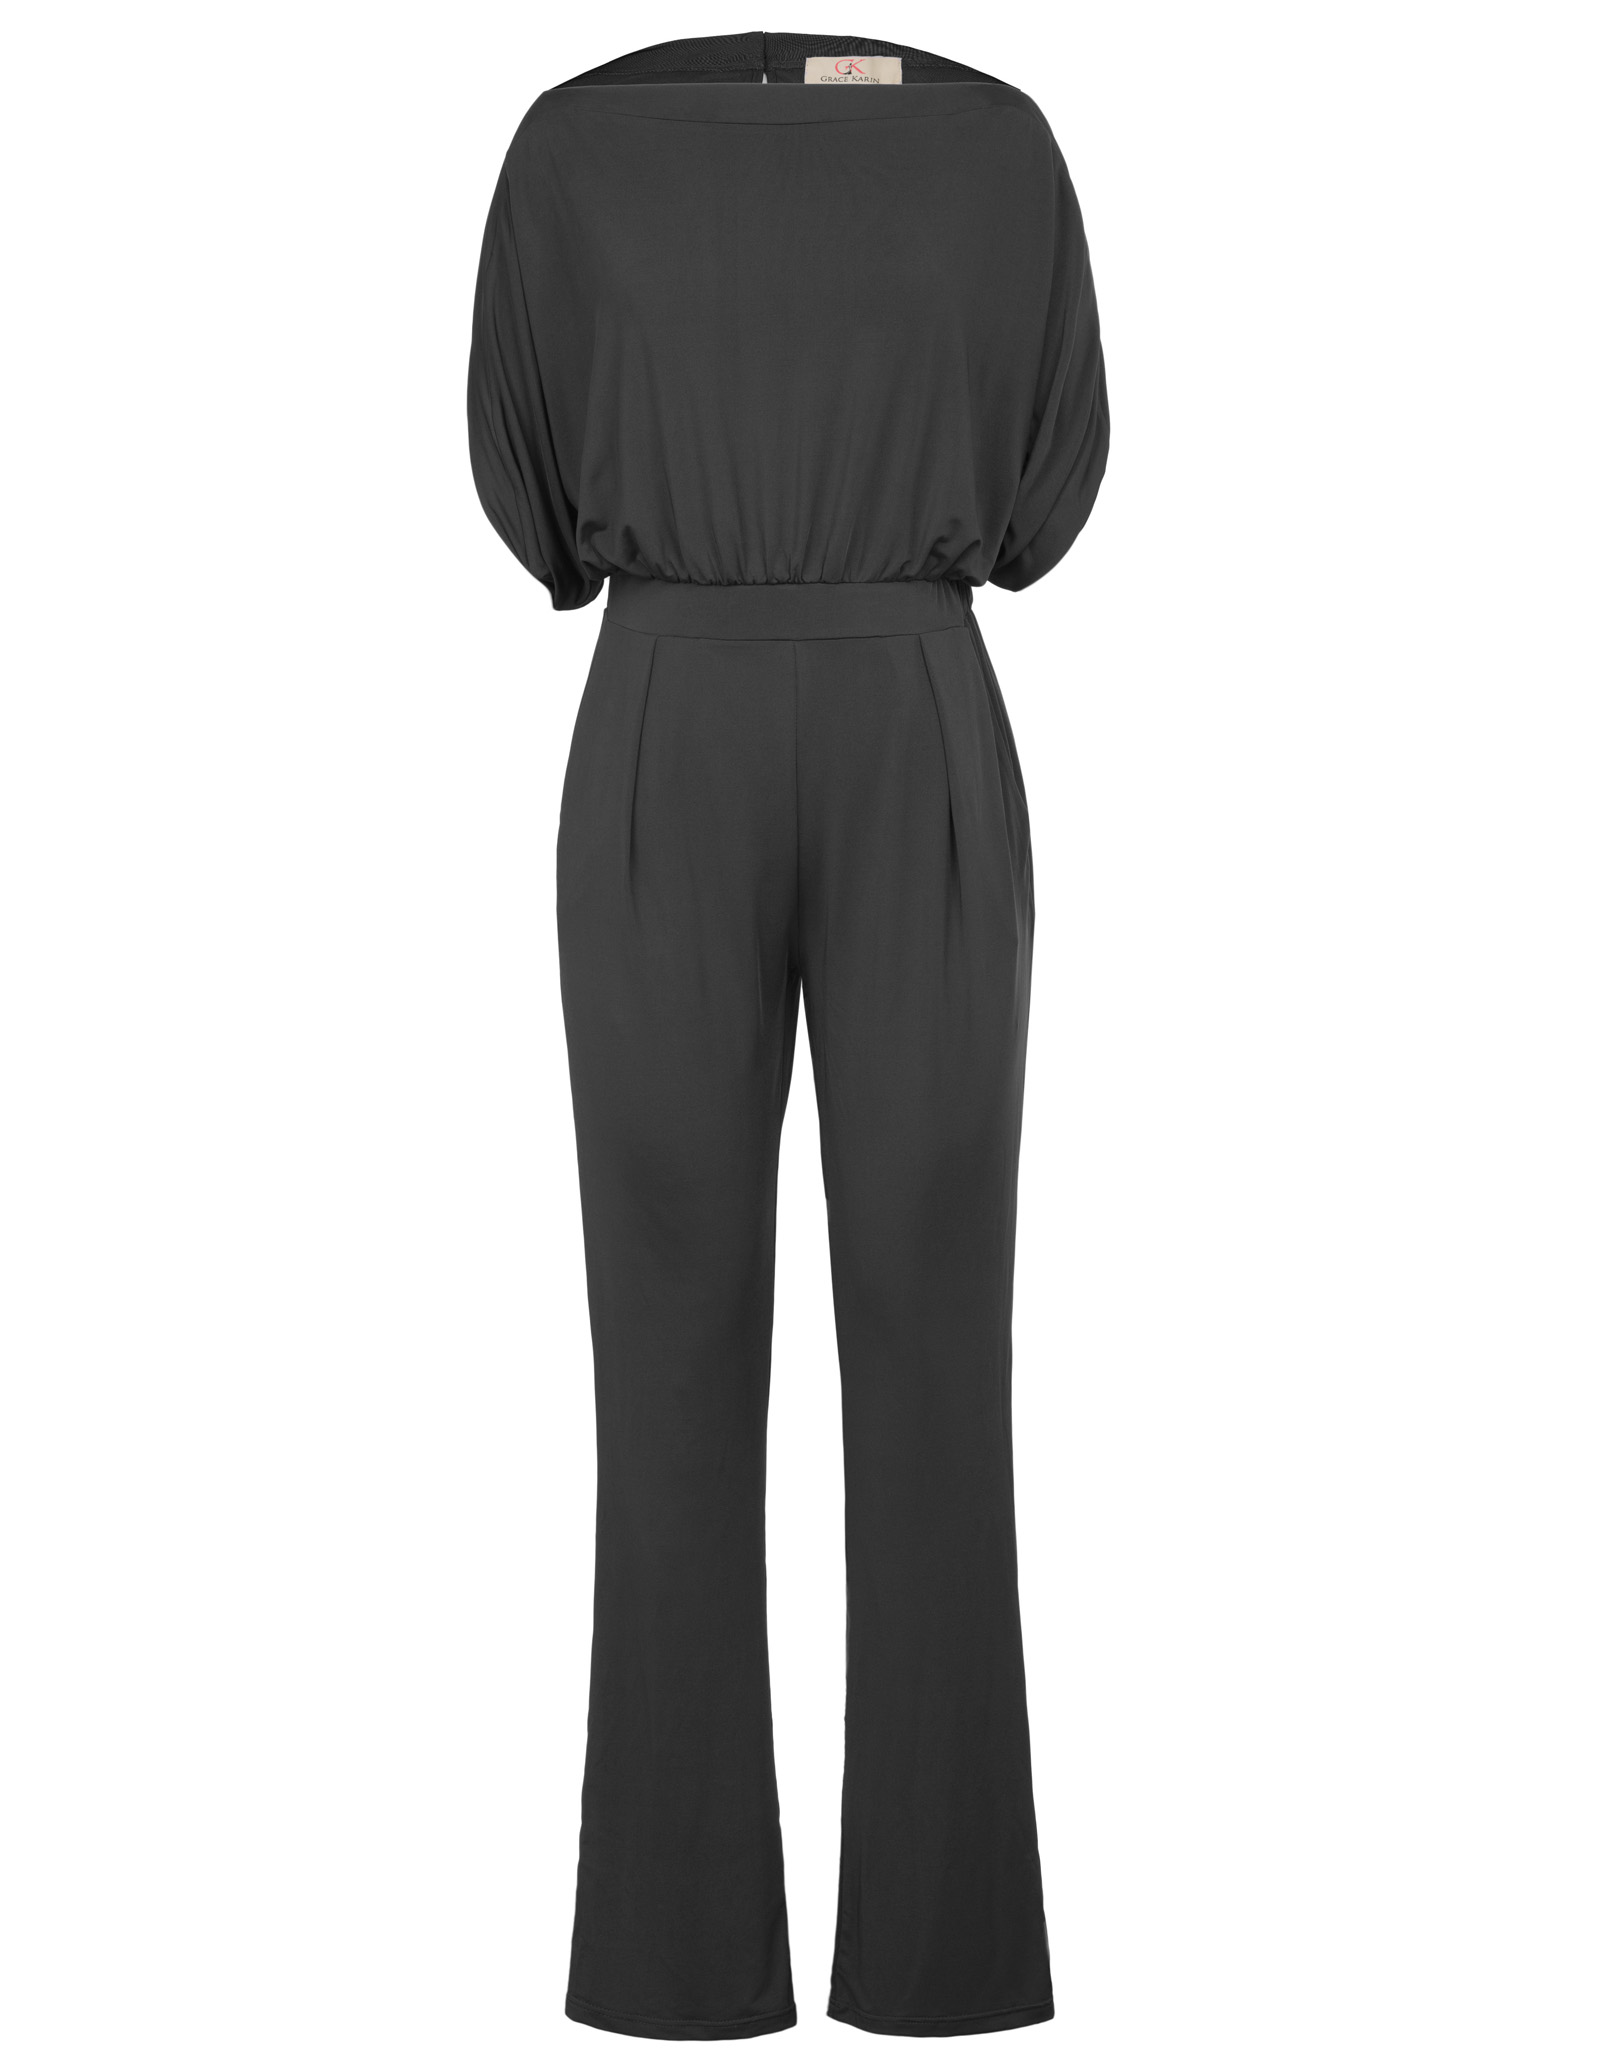 2018 Summer Women Sexy Short Sleeve Straight Neck Jumpsuit Ladies Casual Work Solid Boot Cut Design Fashion Female Jumper Romper